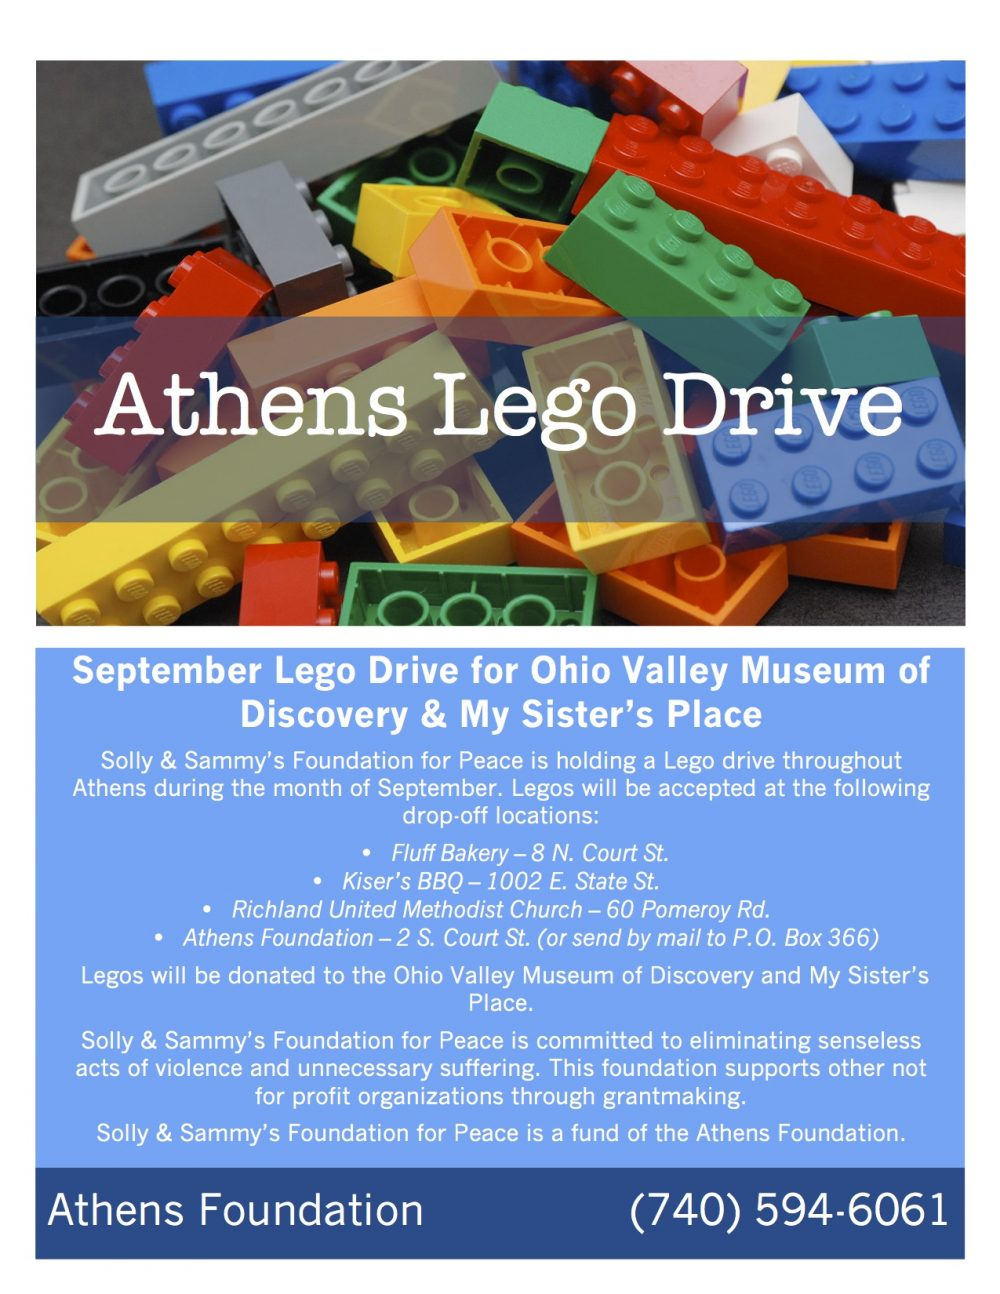 Athens Lego Drive